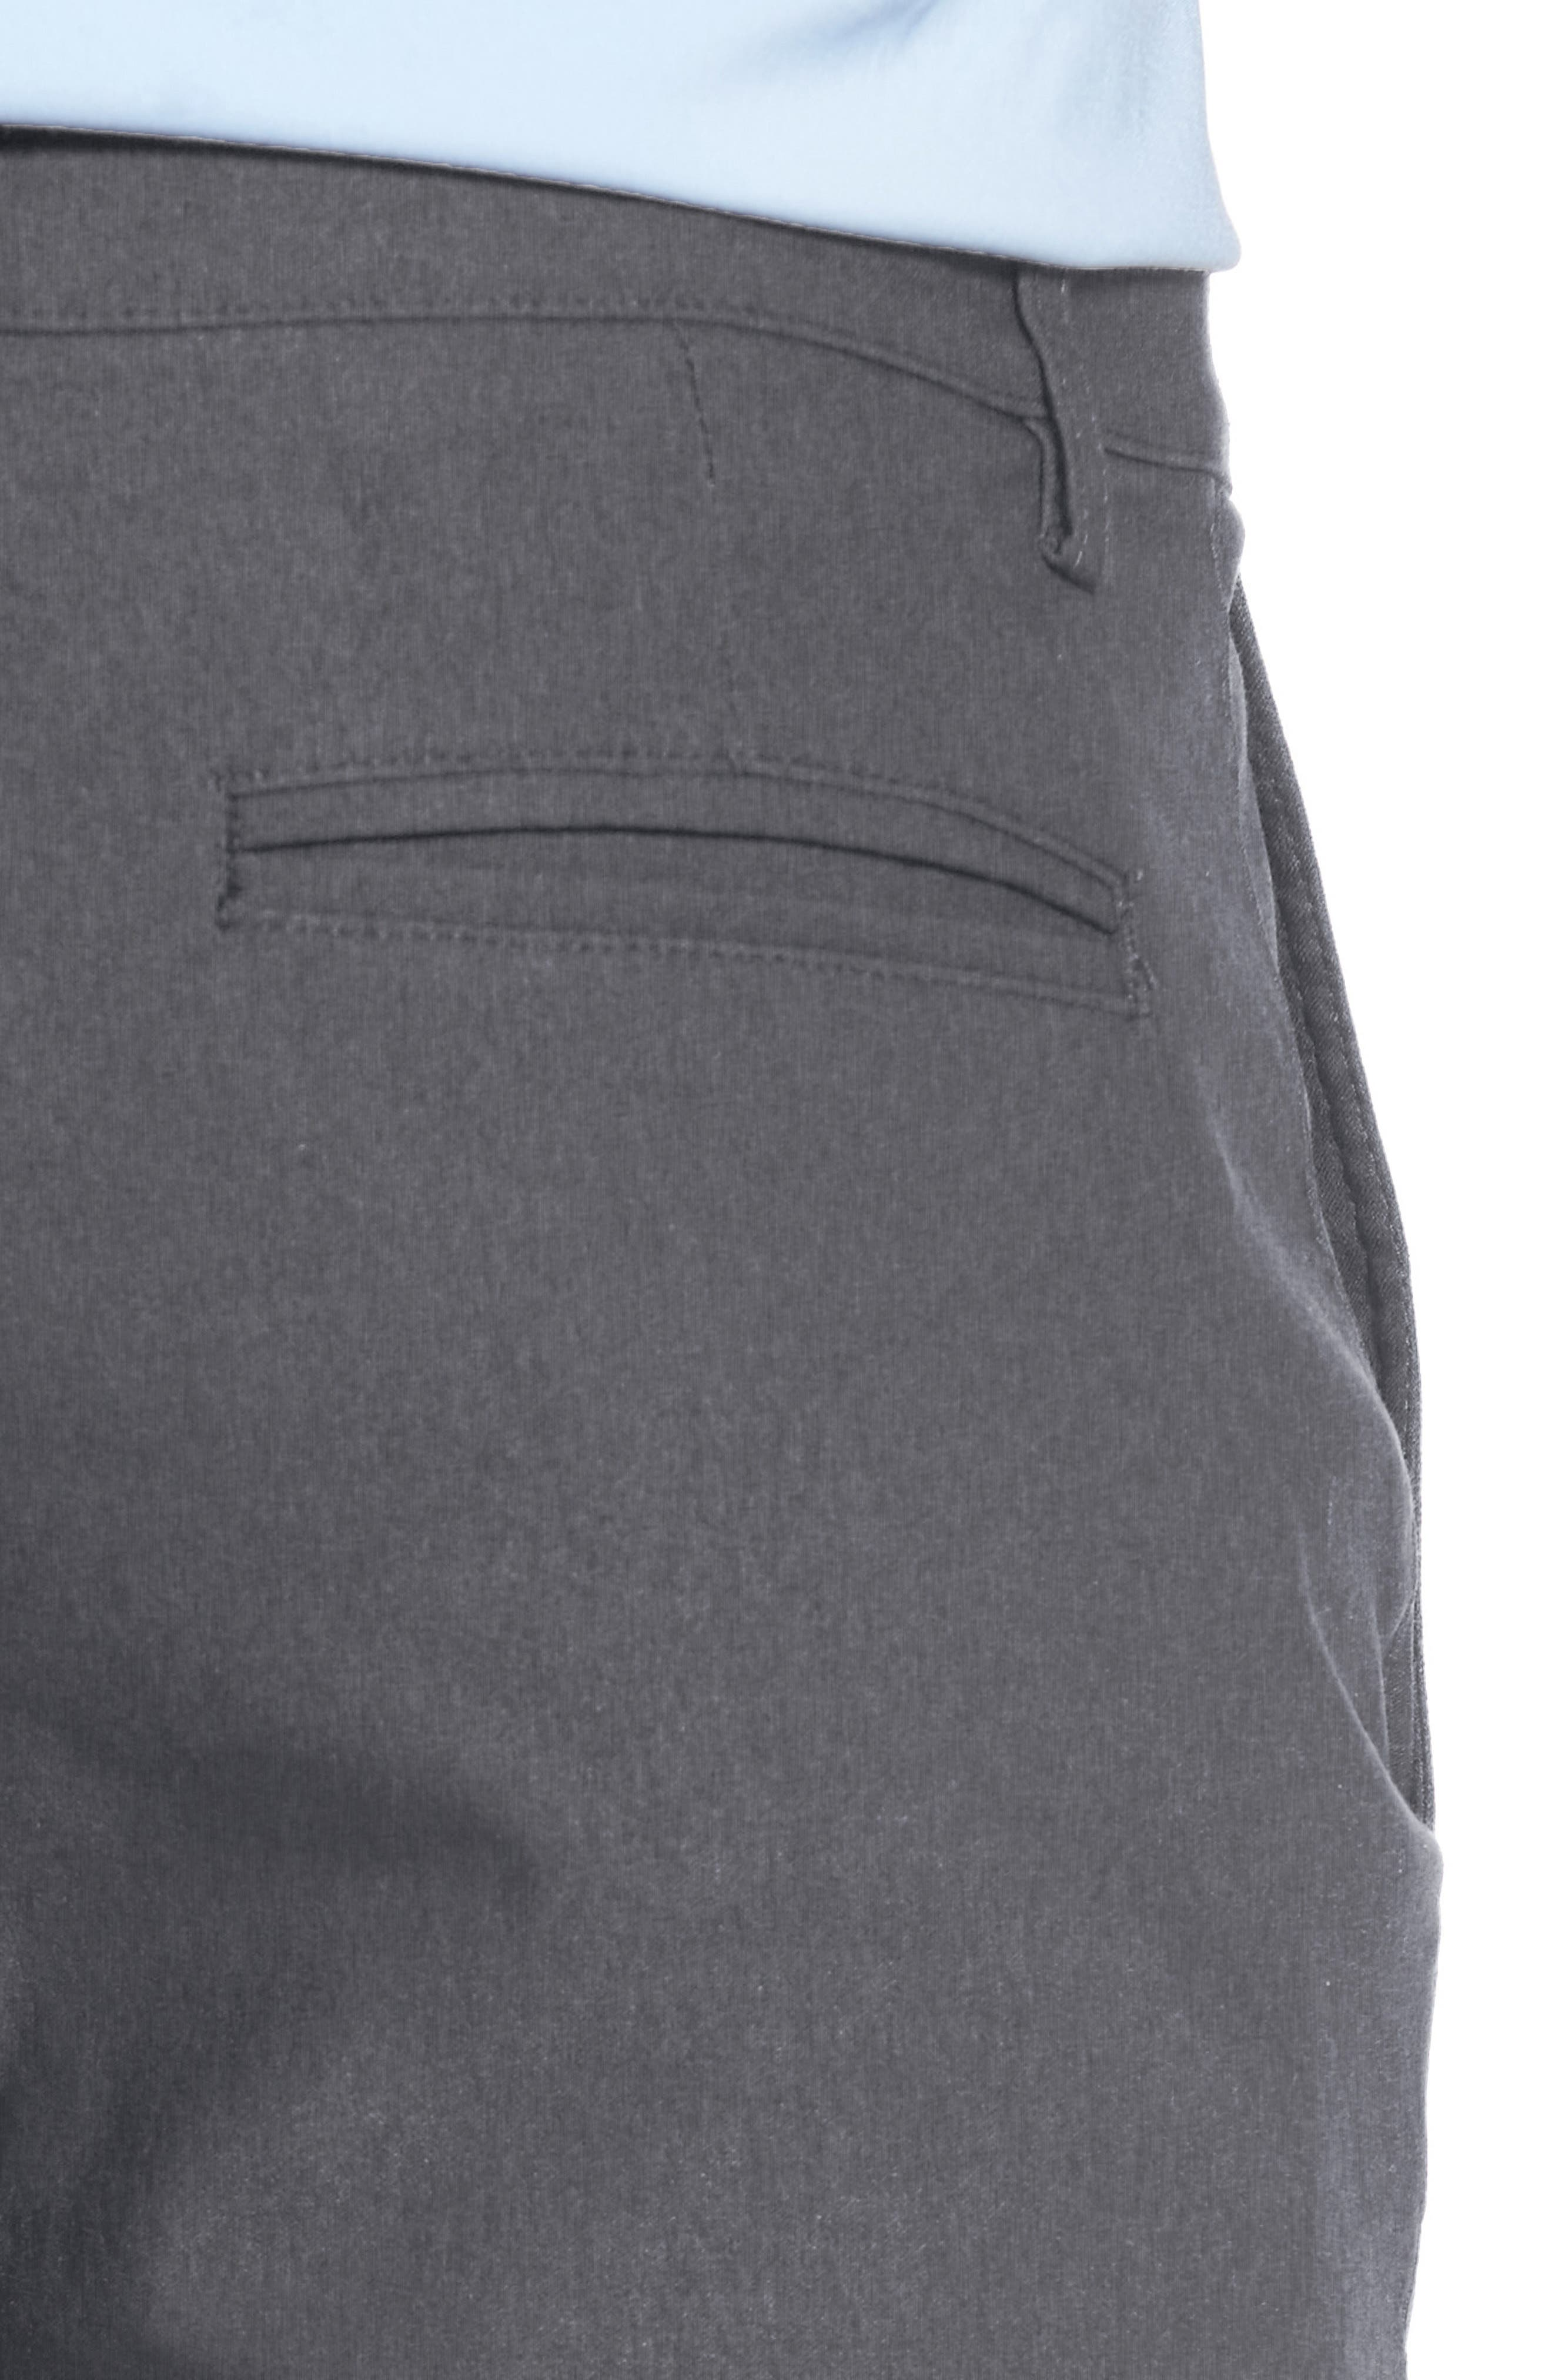 Vice President Trim Fit Performance Chinos,                             Alternate thumbnail 4, color,                             Grey